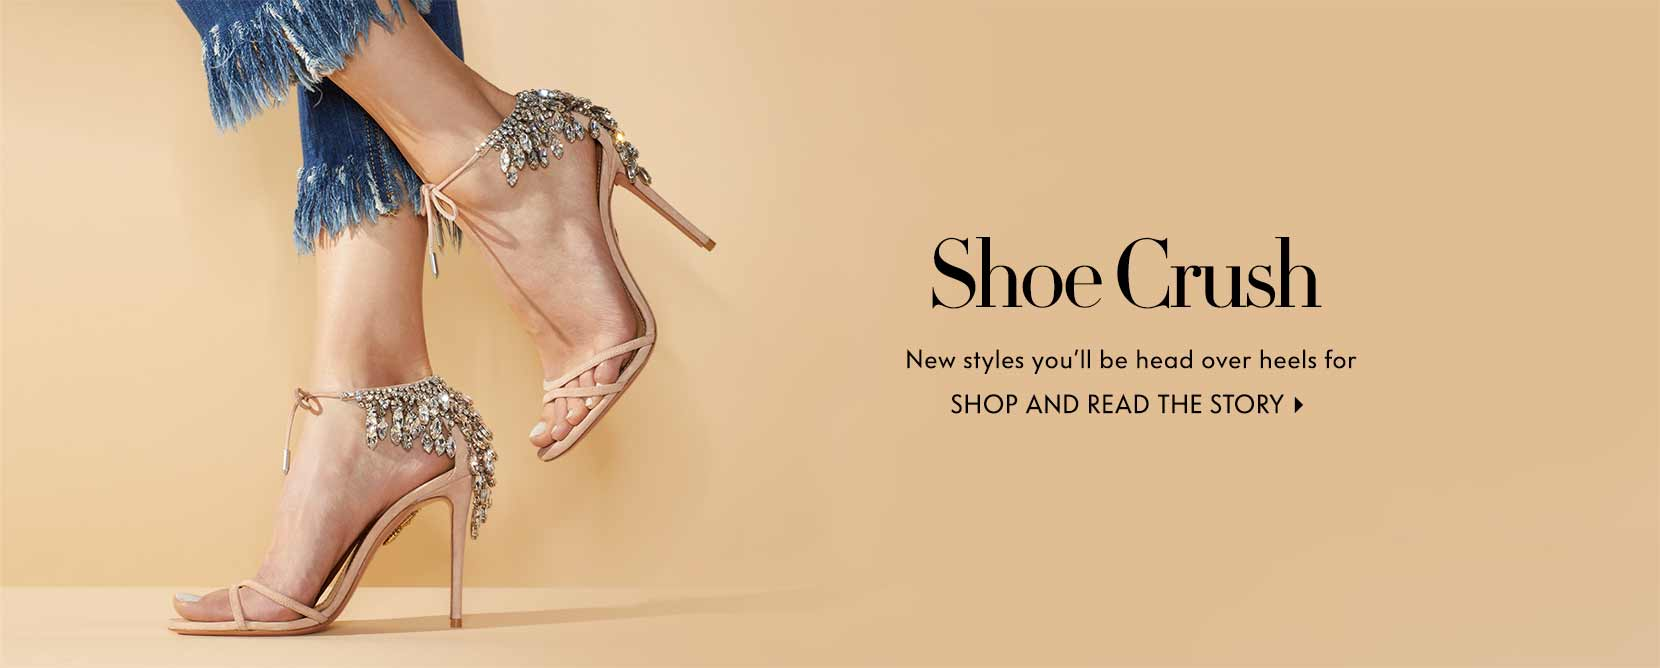 Shoe crush new styles you'll be head over heels for. Shop and read the story